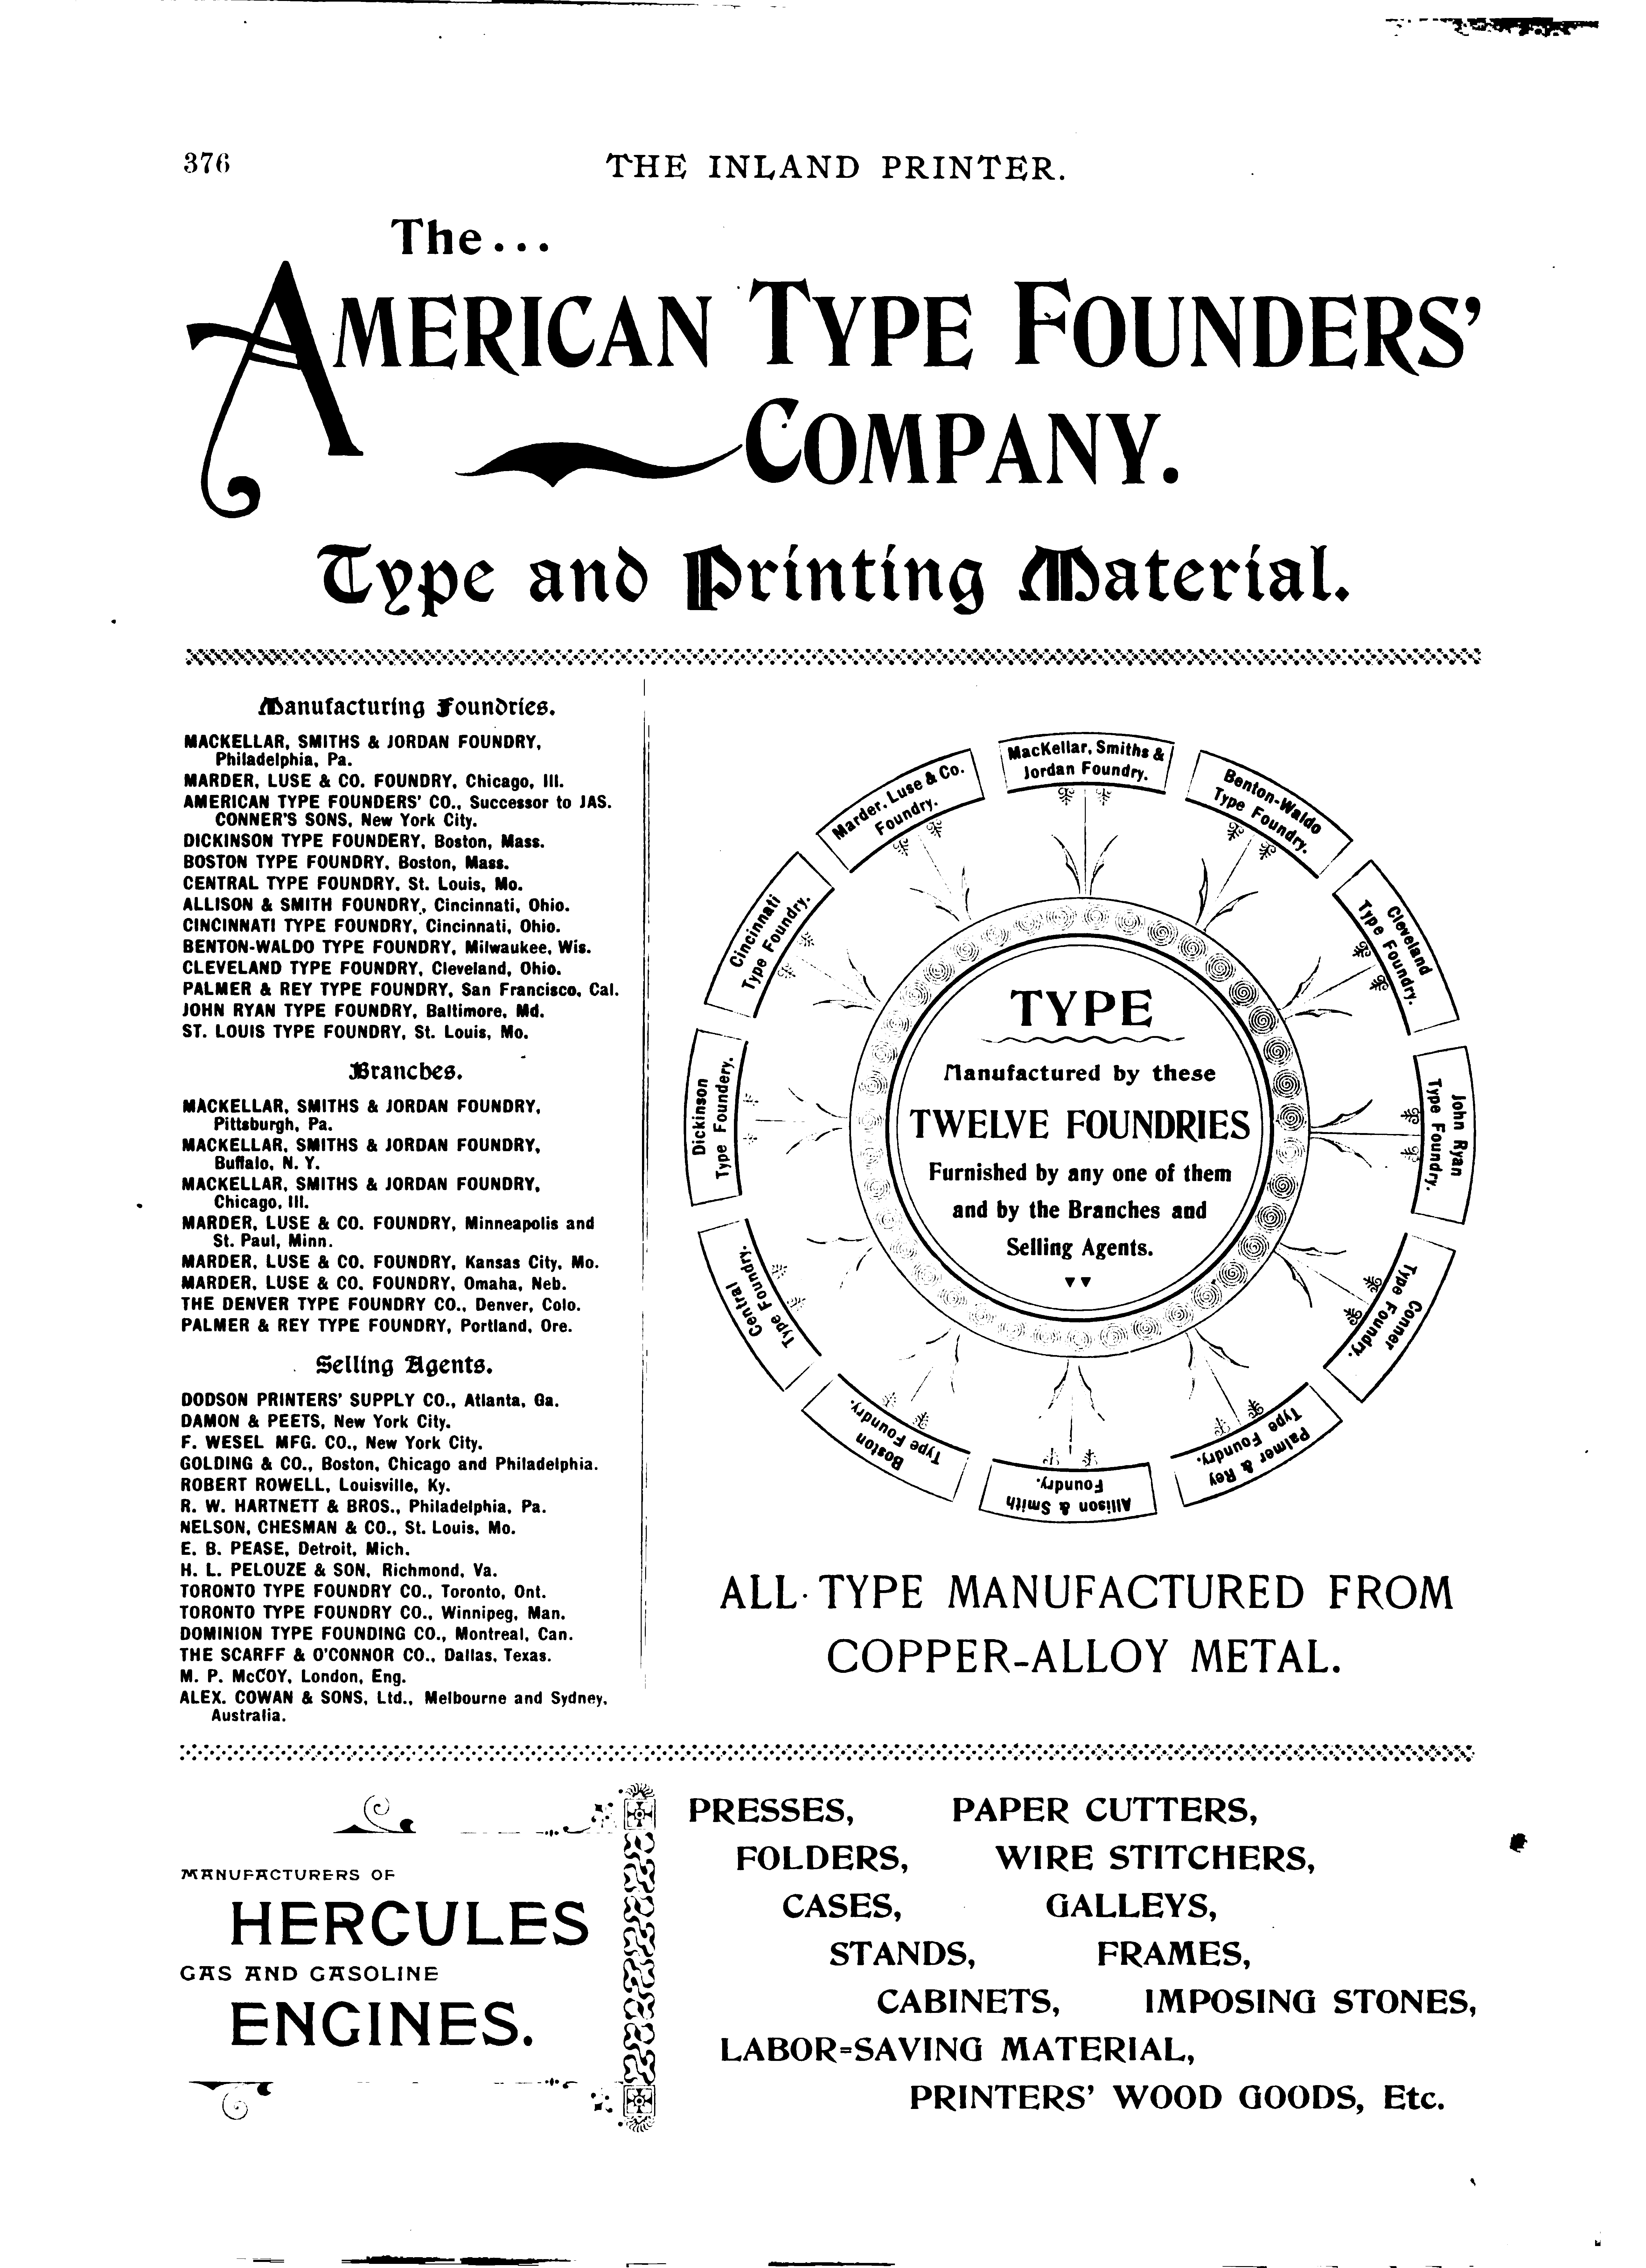 American Type Founders: Early History Through 1906